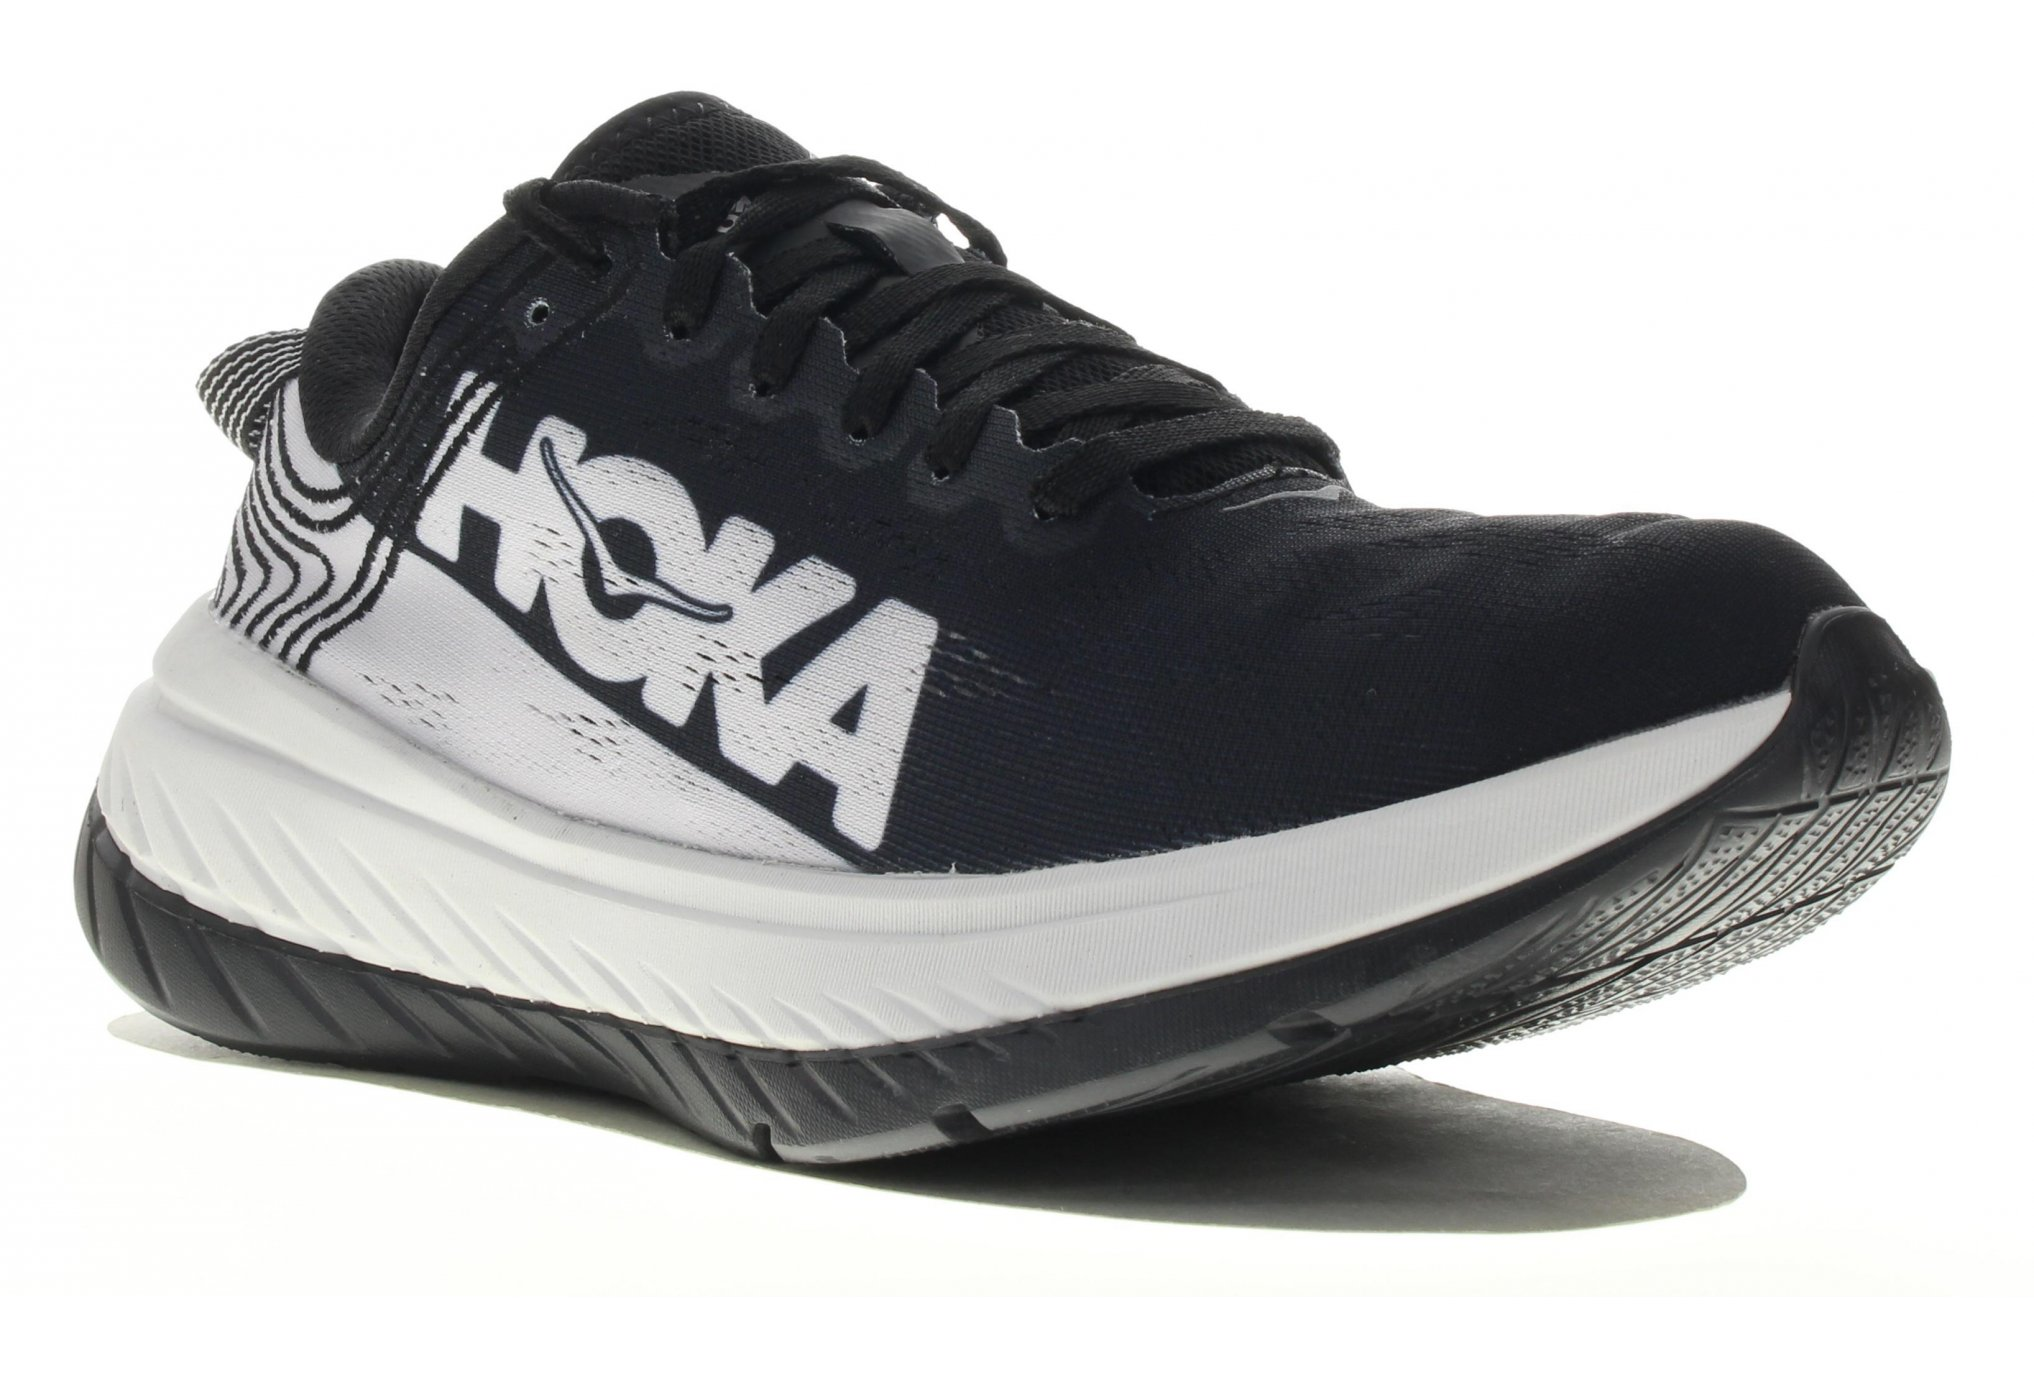 Hoka One One Carbon X Chaussures running femme